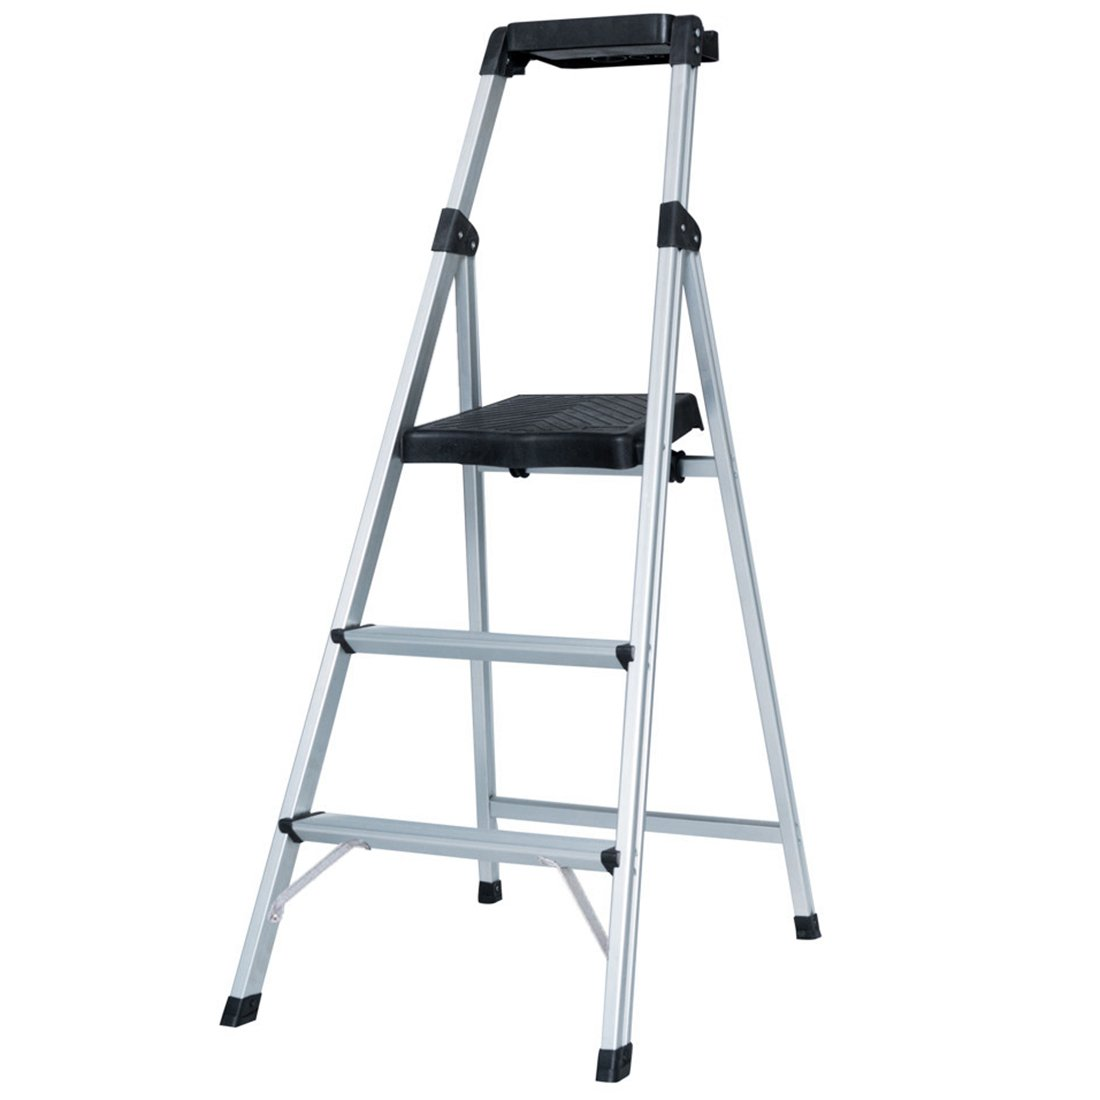 GOODLIFE Folding Home Depot 3 Step Ladder Ultra Lightweight Aluminum Step Stool with Project Tray 300 LB Capacity HMI095